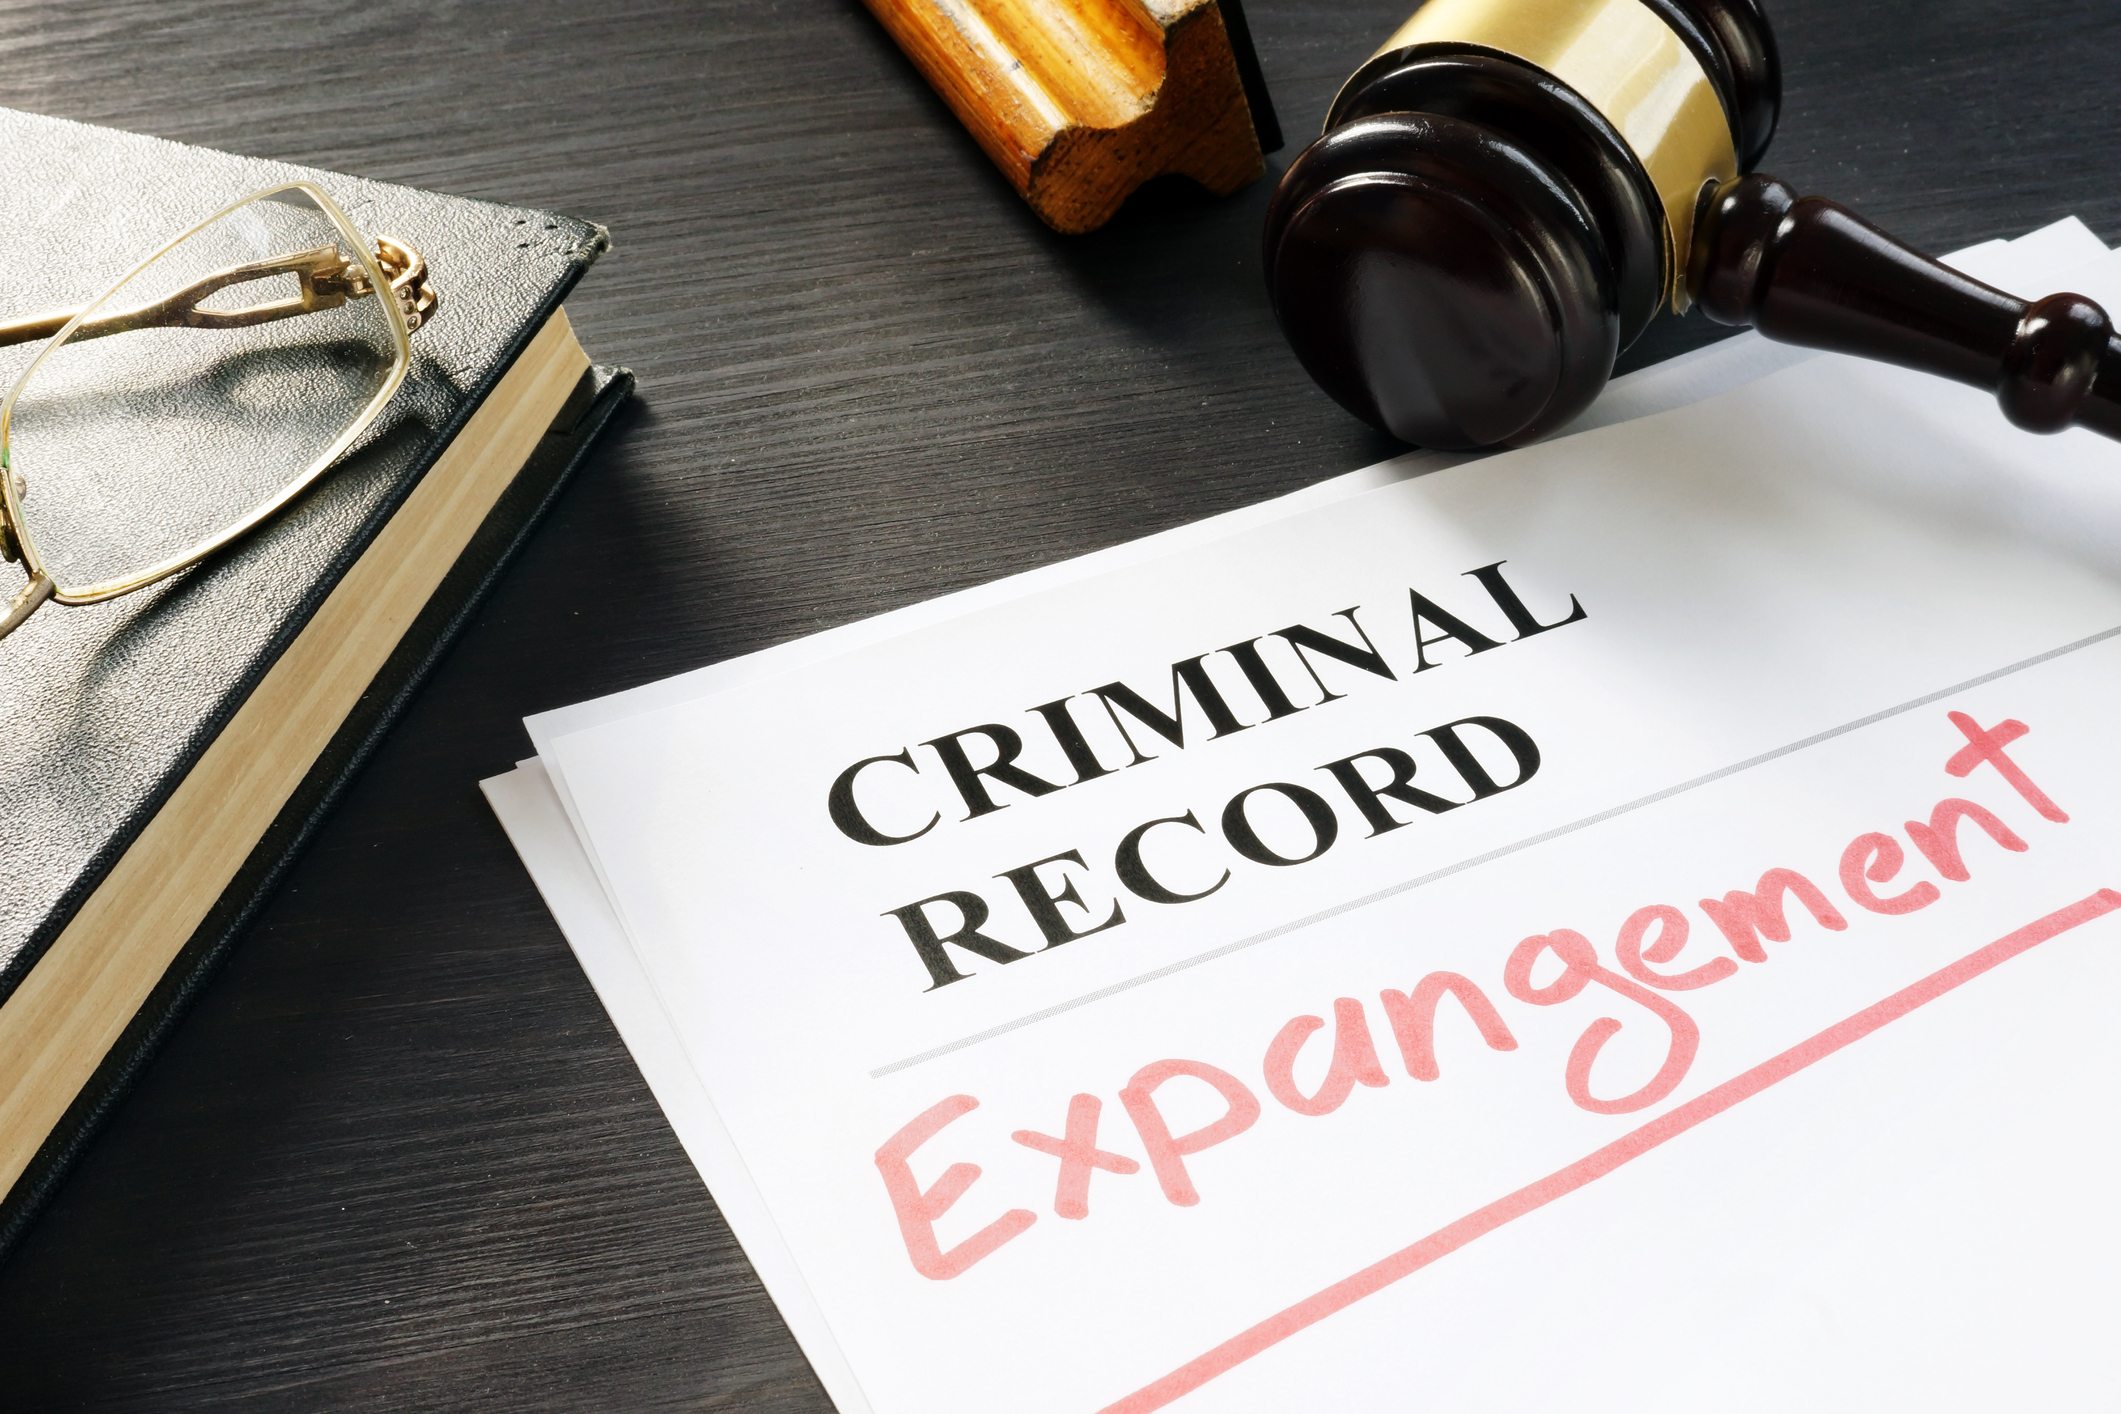 Getting a Criminal Record Expunged in Nashville, Tennessee